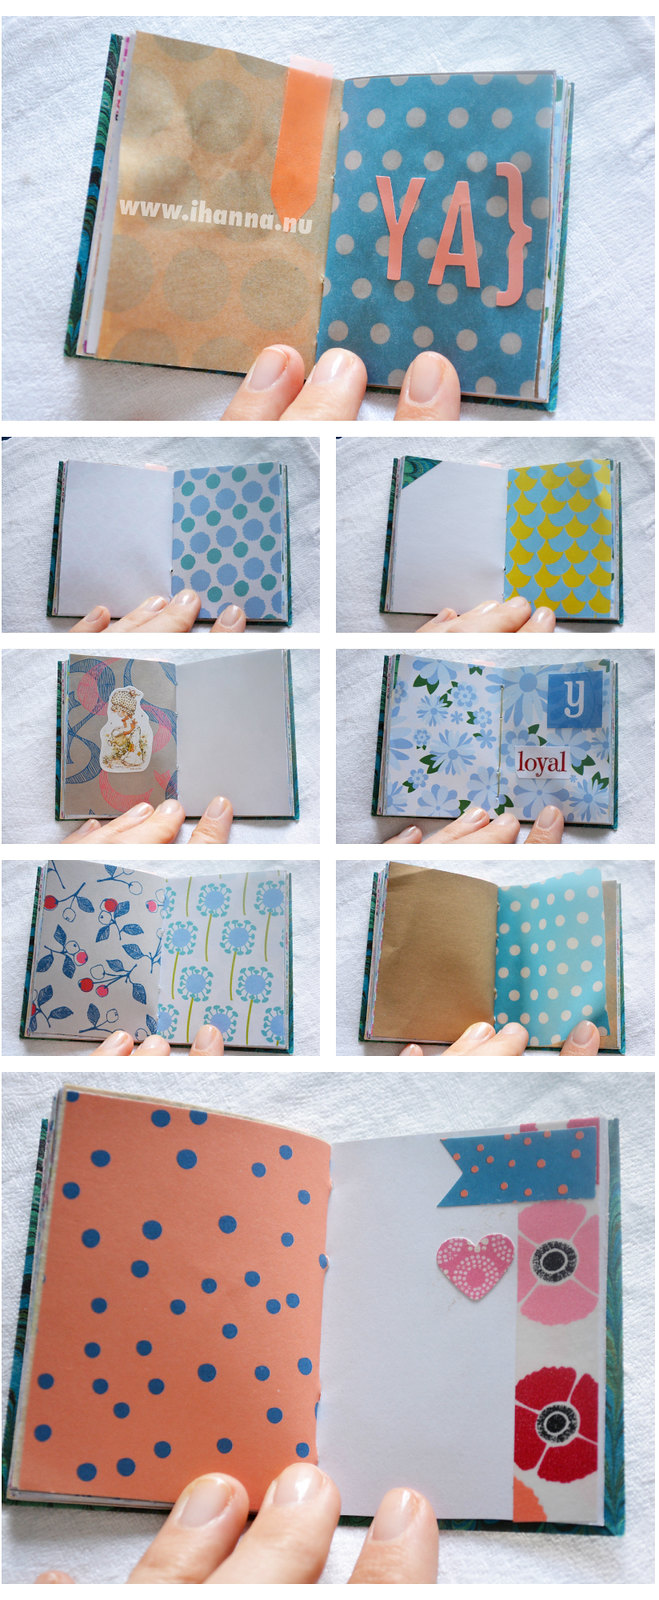 A miniature notebook with mixed papers by iHanna - Copyright Hanna Andersson